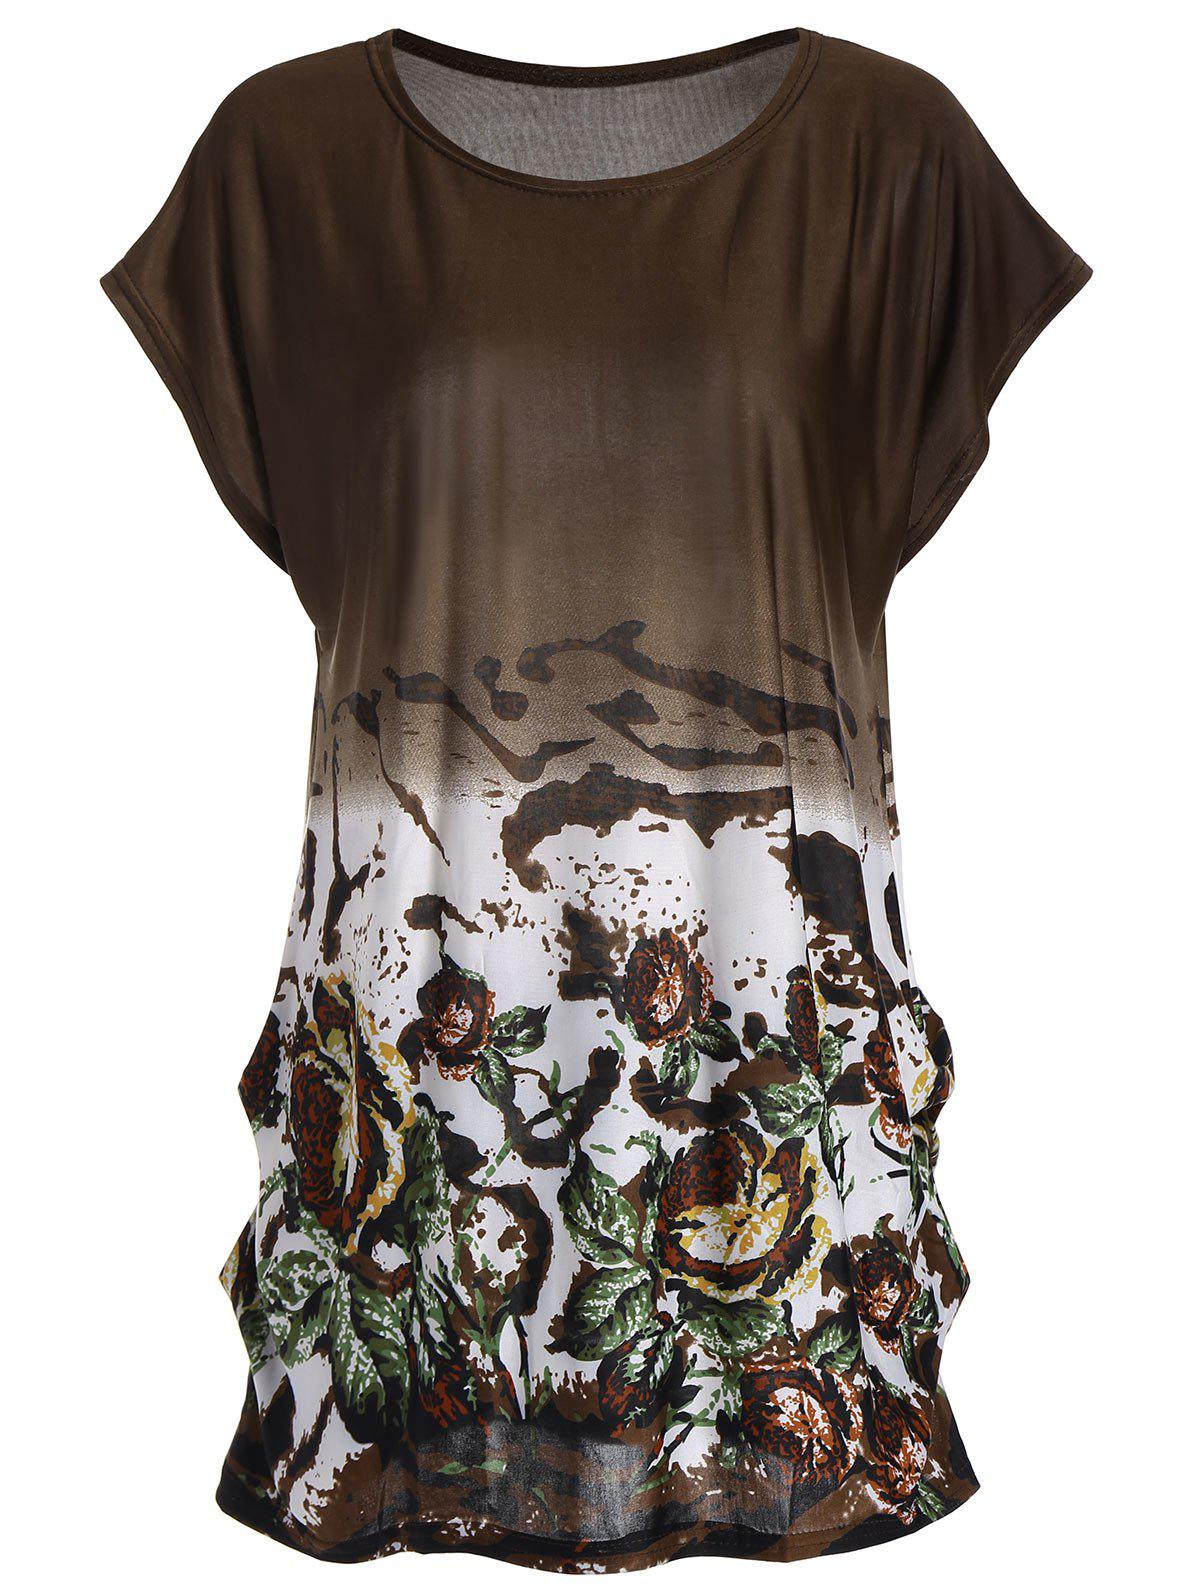 Ombre Floral Long Tunic T-shirt - BROWN ONE SIZE